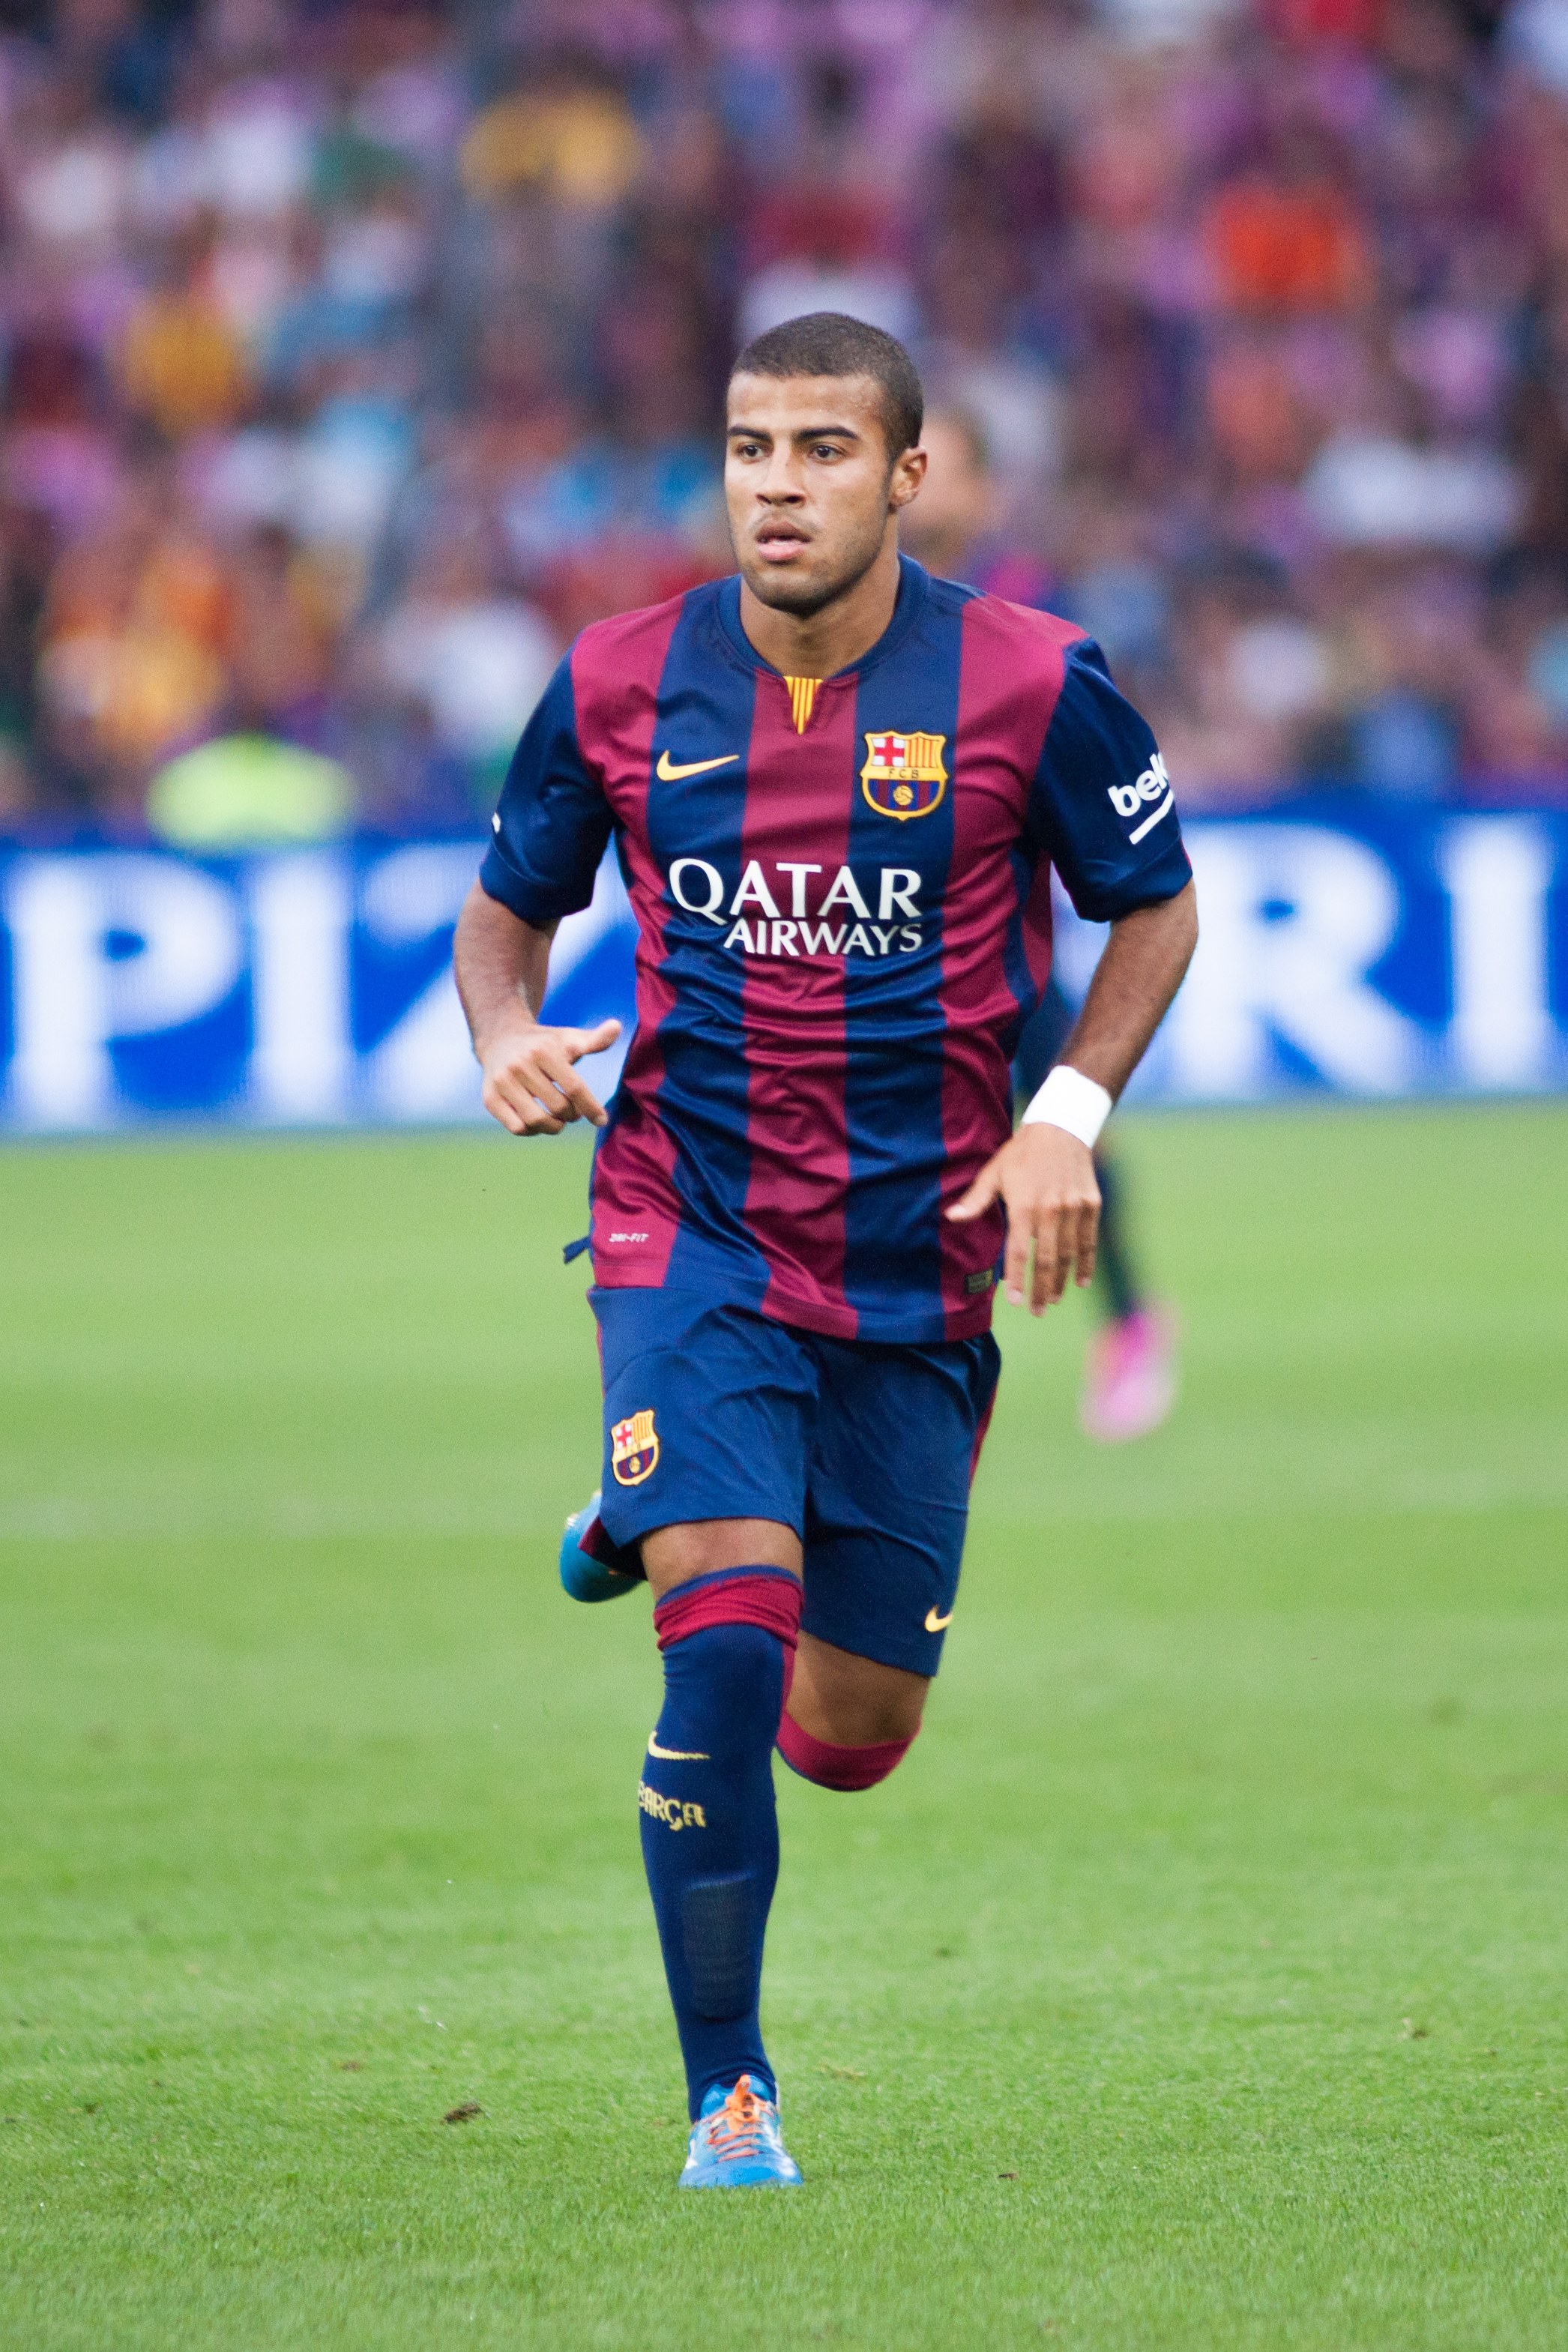 Rafinha earned a  million dollar salary - leaving the net worth at 20 million in 2017